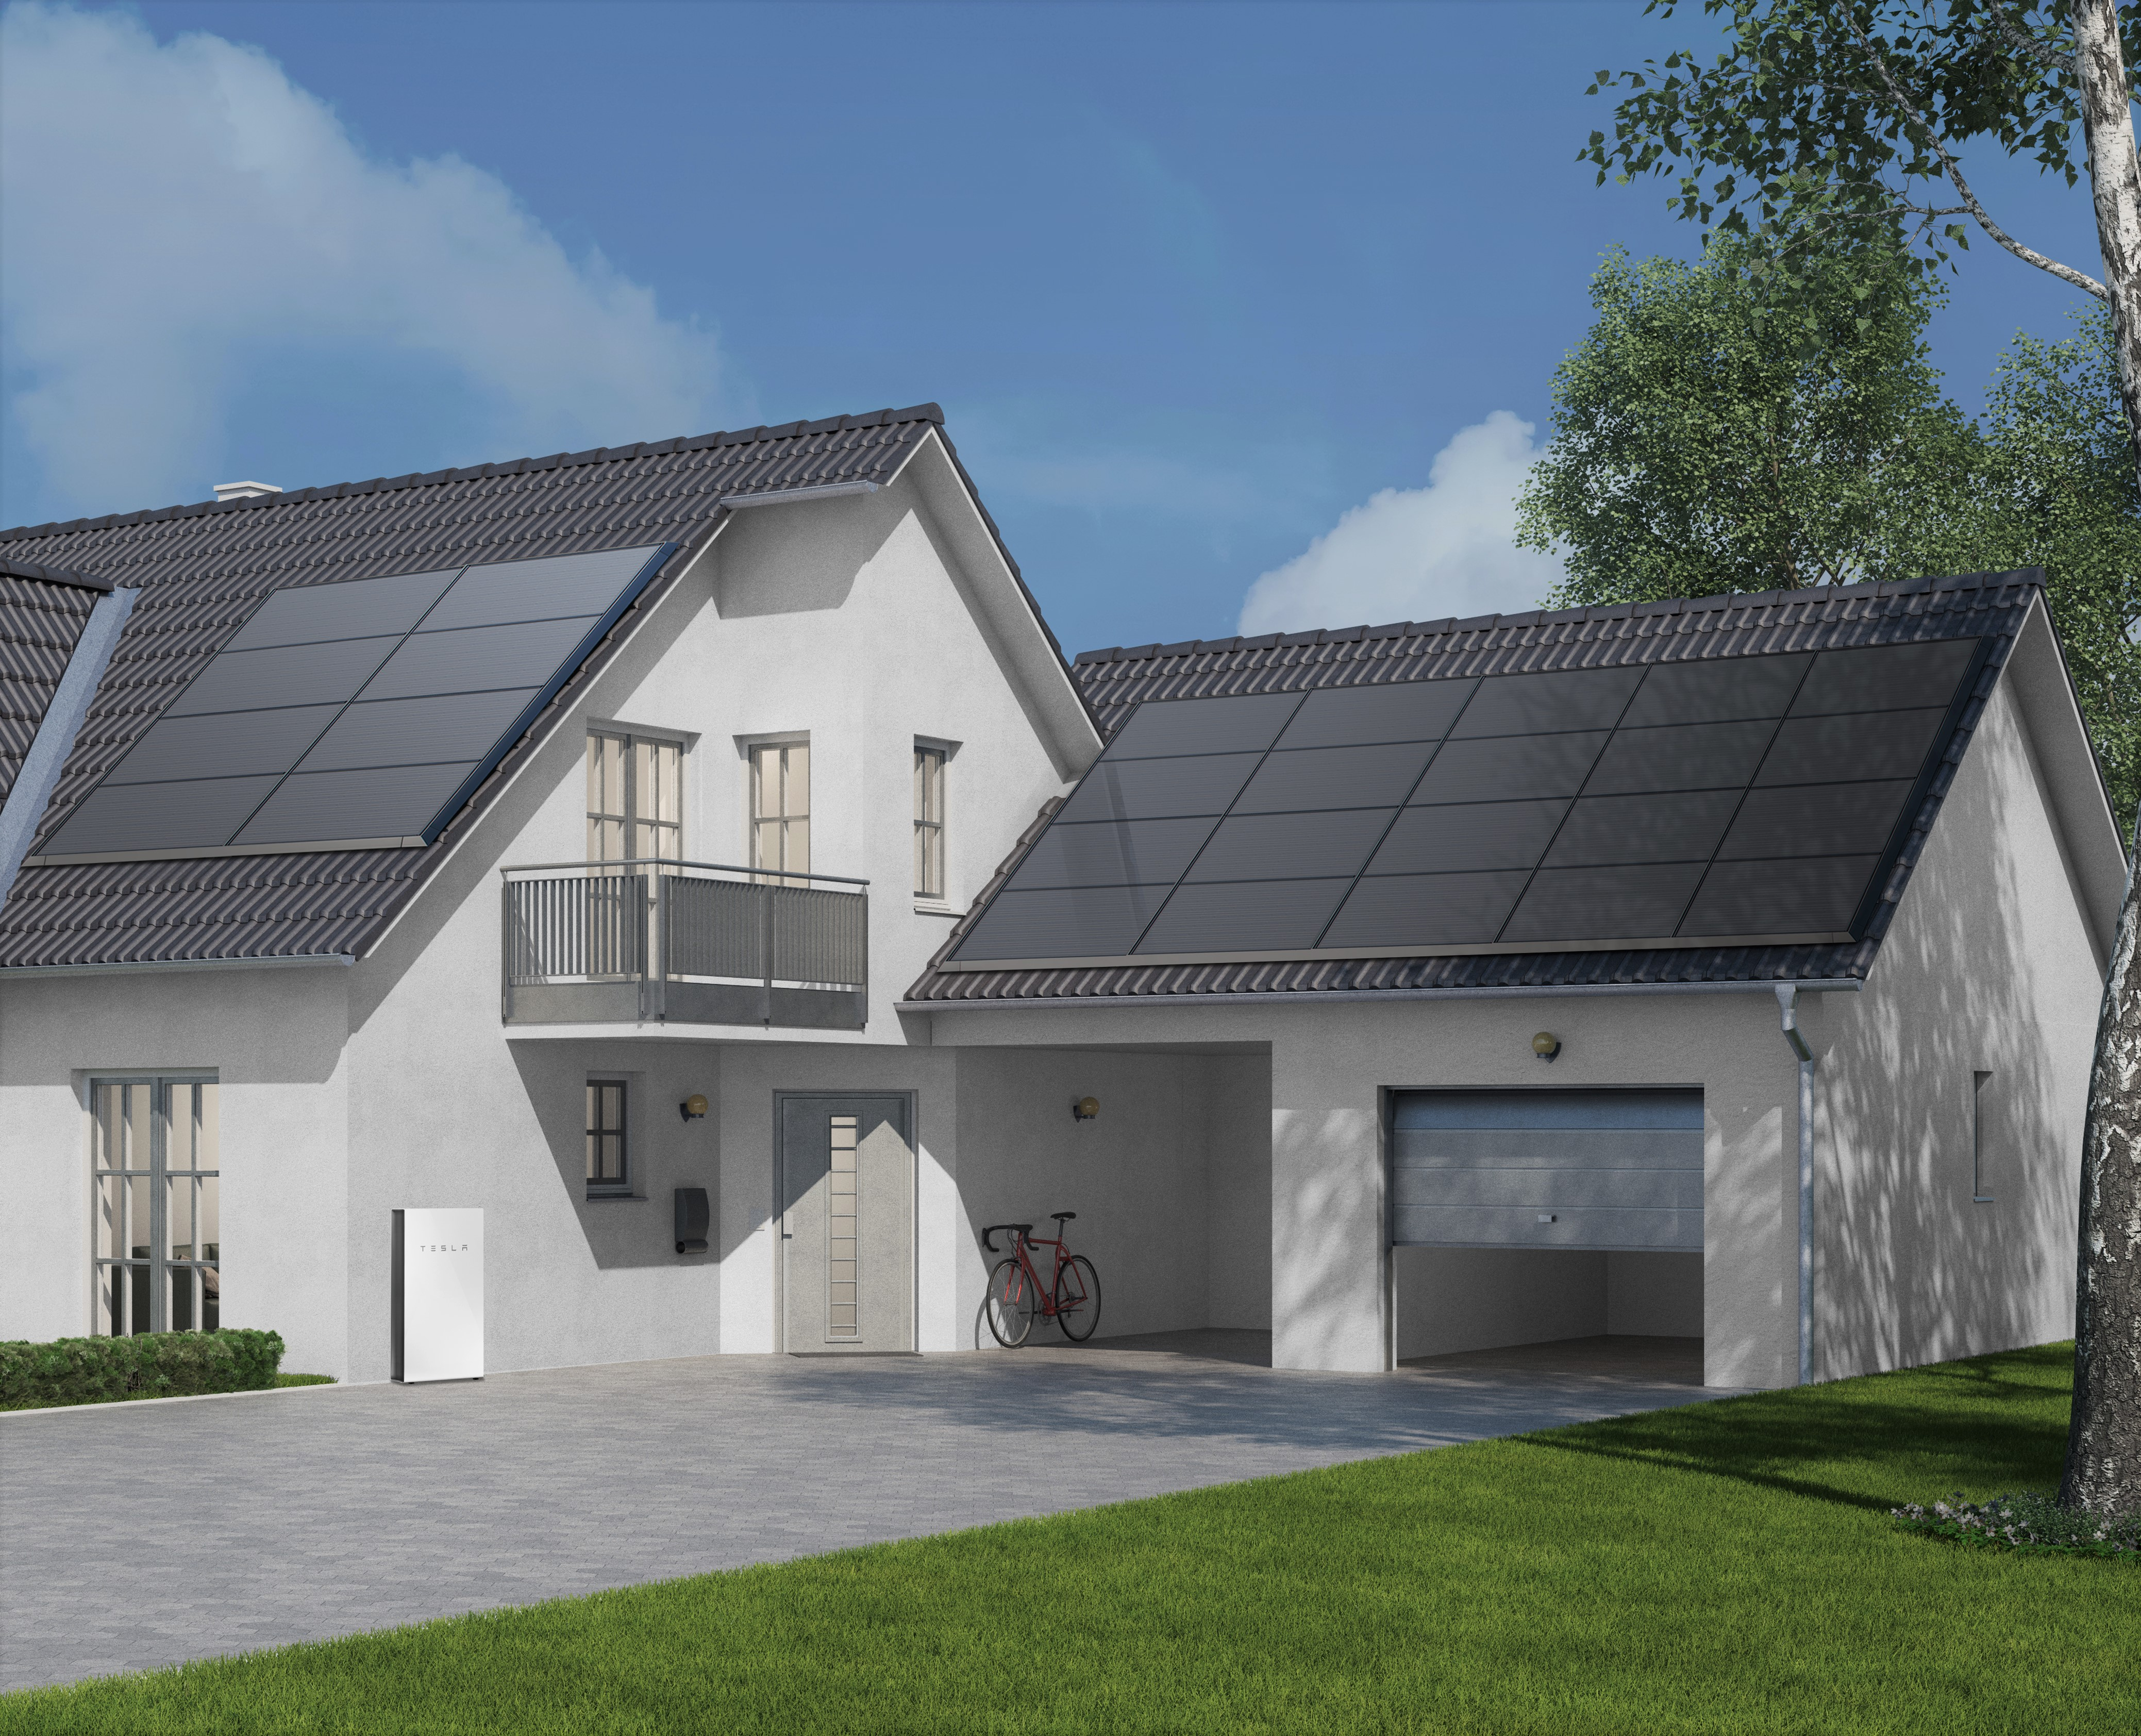 Tesla Powerwall brings energy security to your home